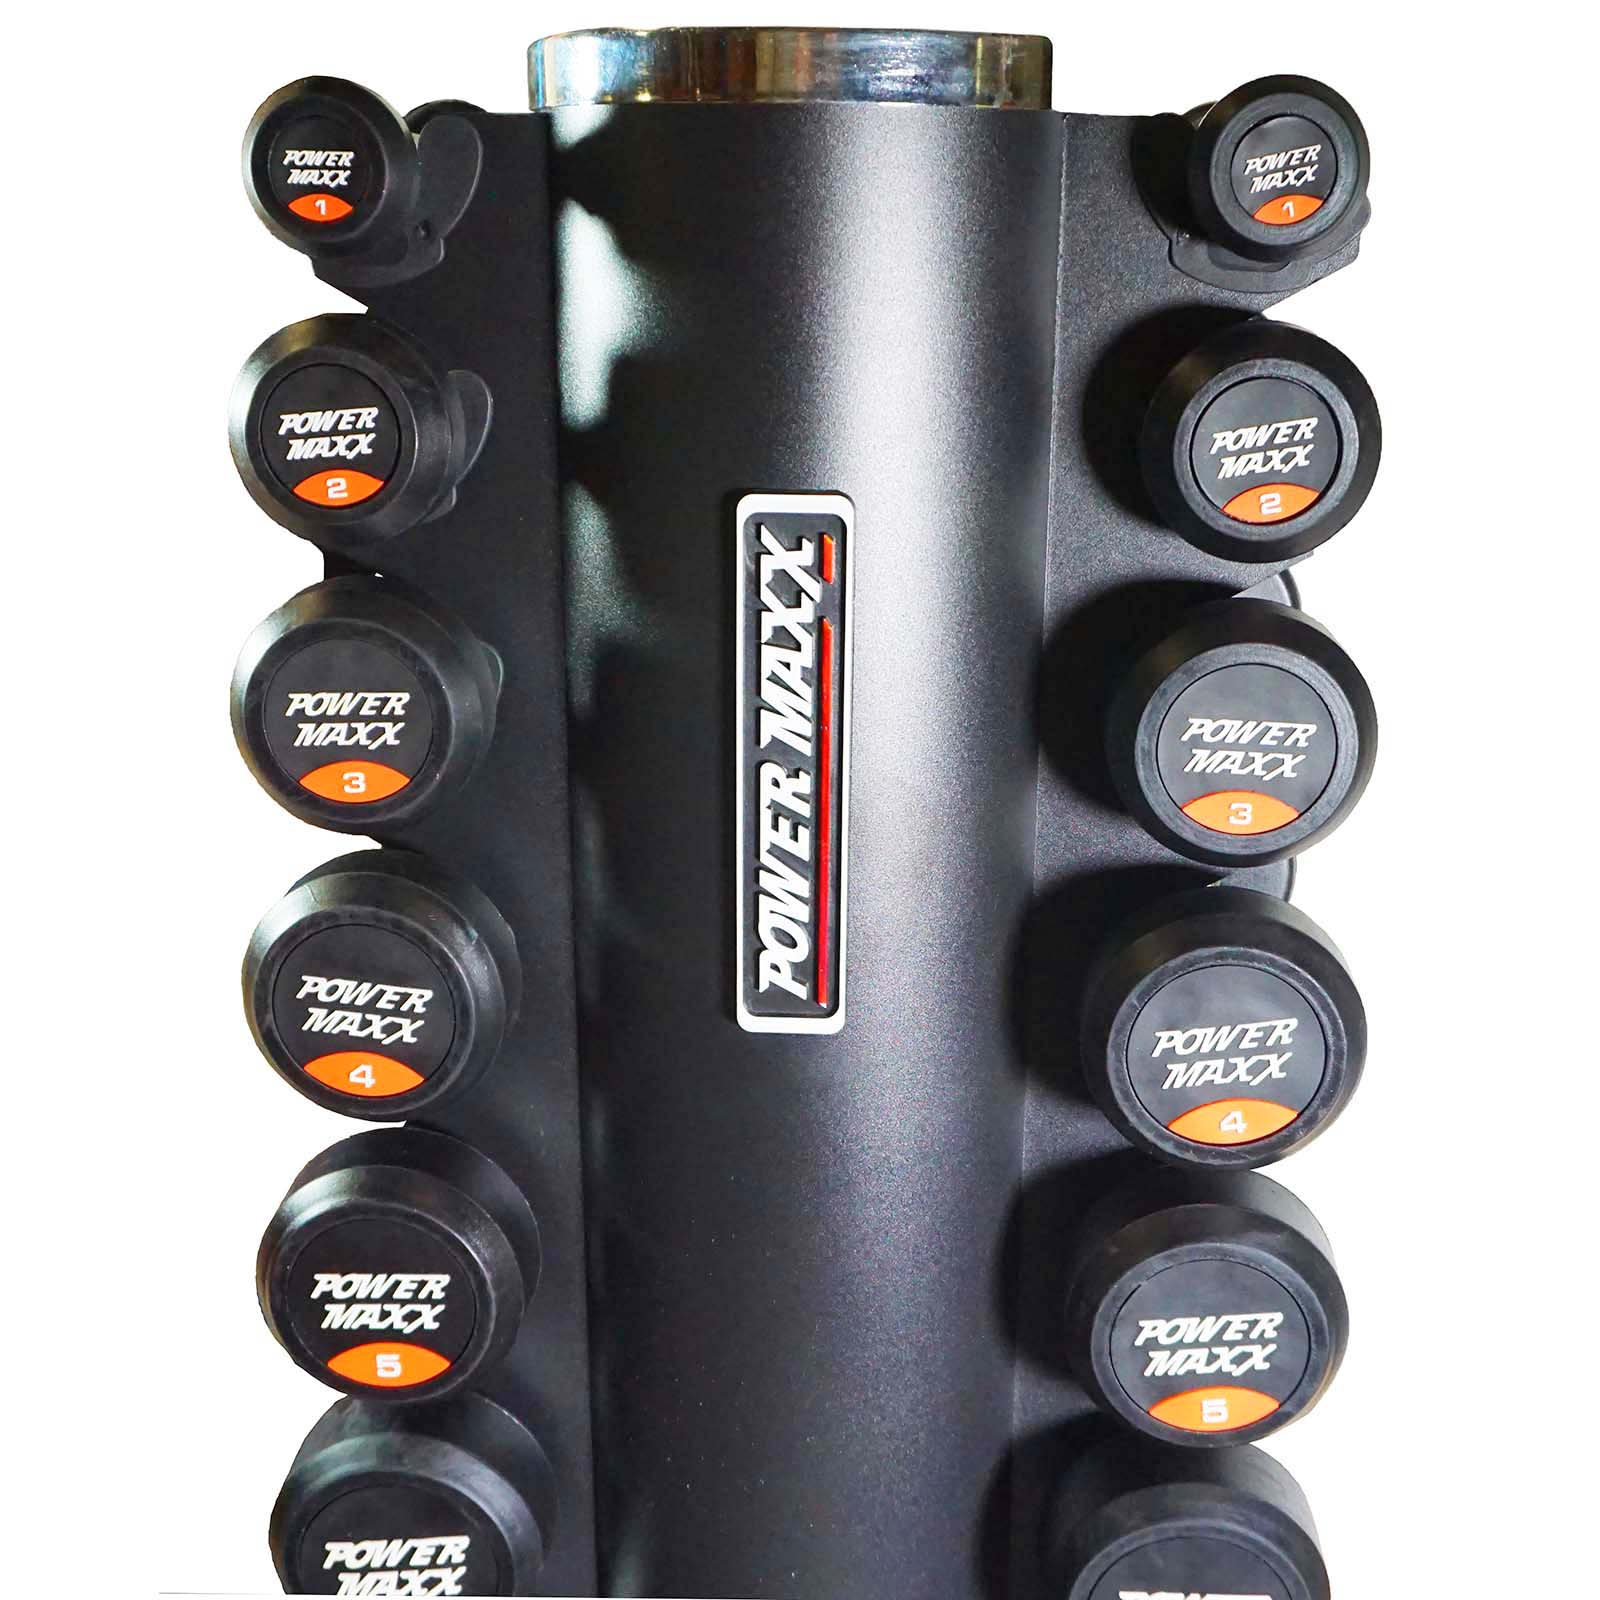 1-10 compact dumbbell set